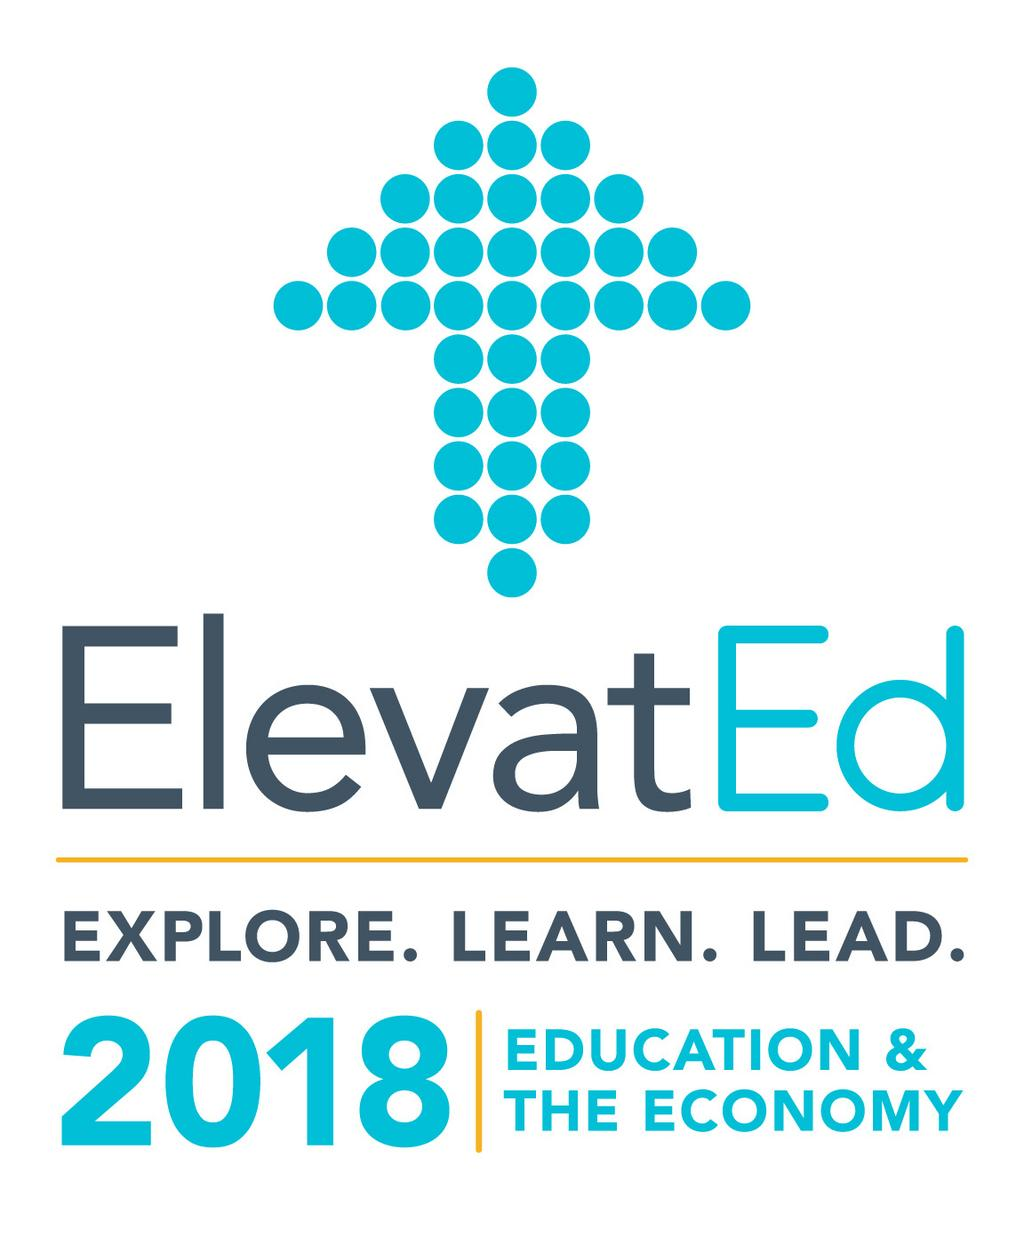 ElevatEd: Education & the Economy